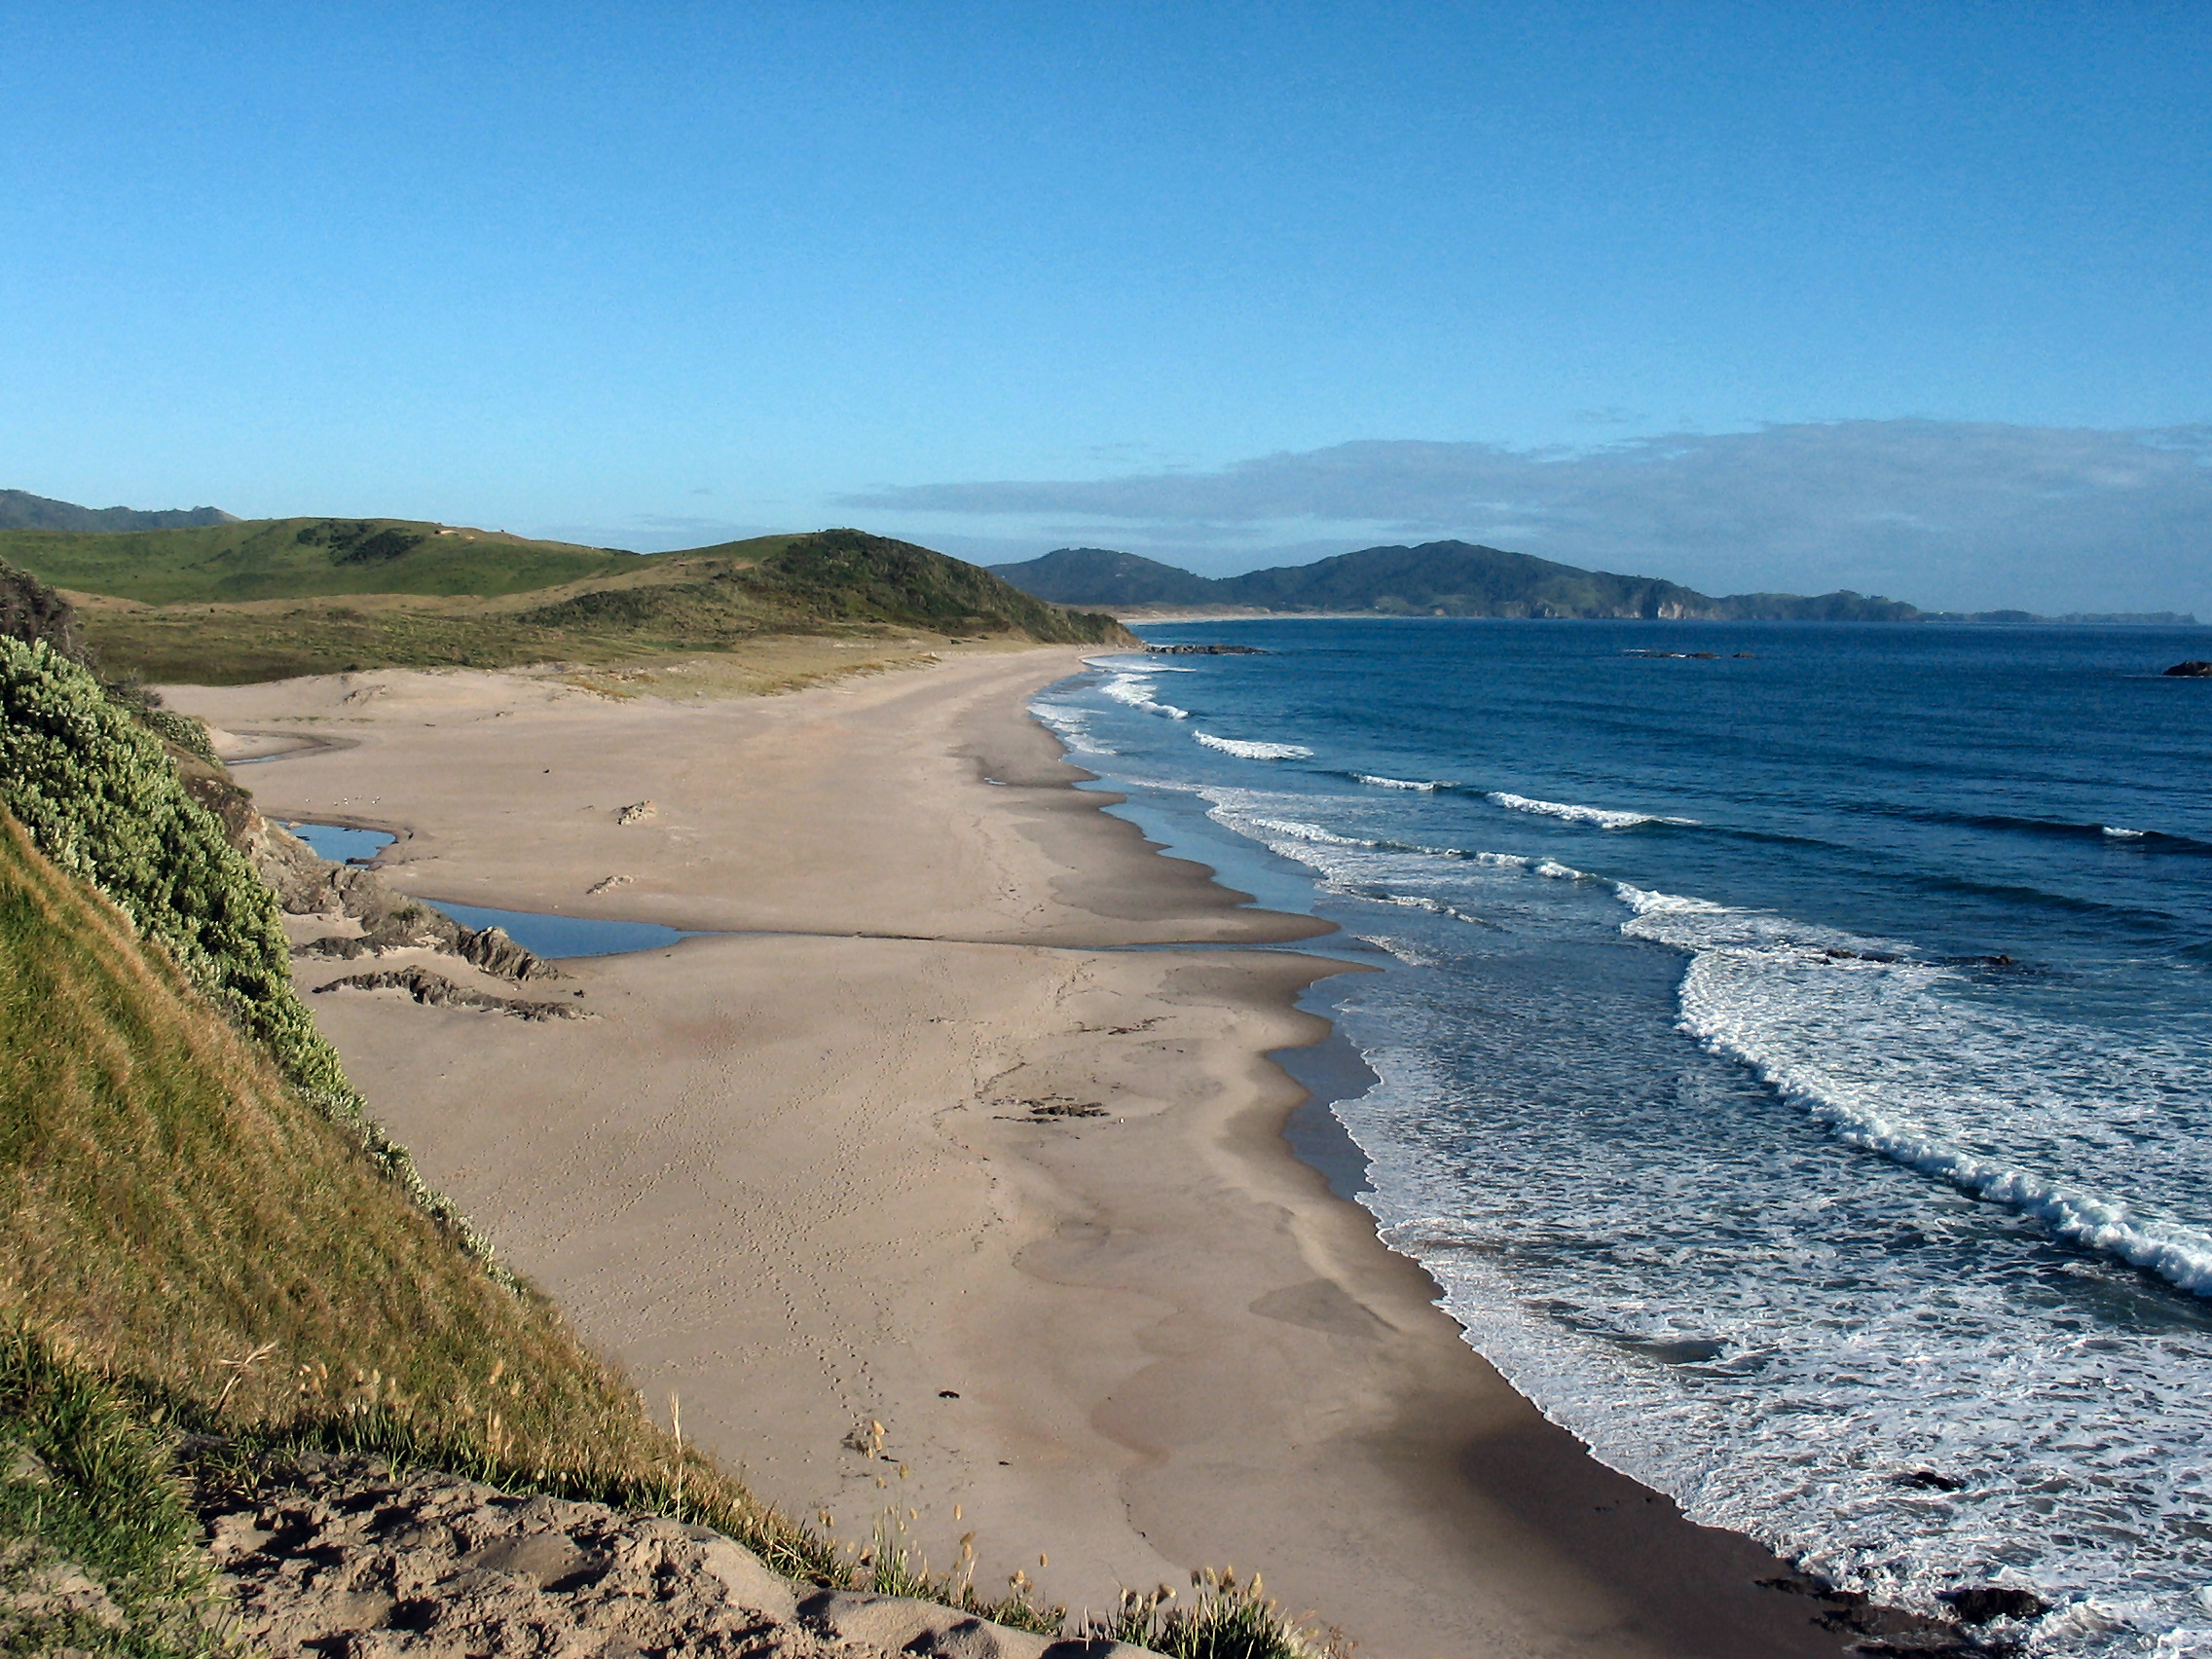 Ocean Beach, Northland, New Zealand // Photo Credit: Wikimedia Commons